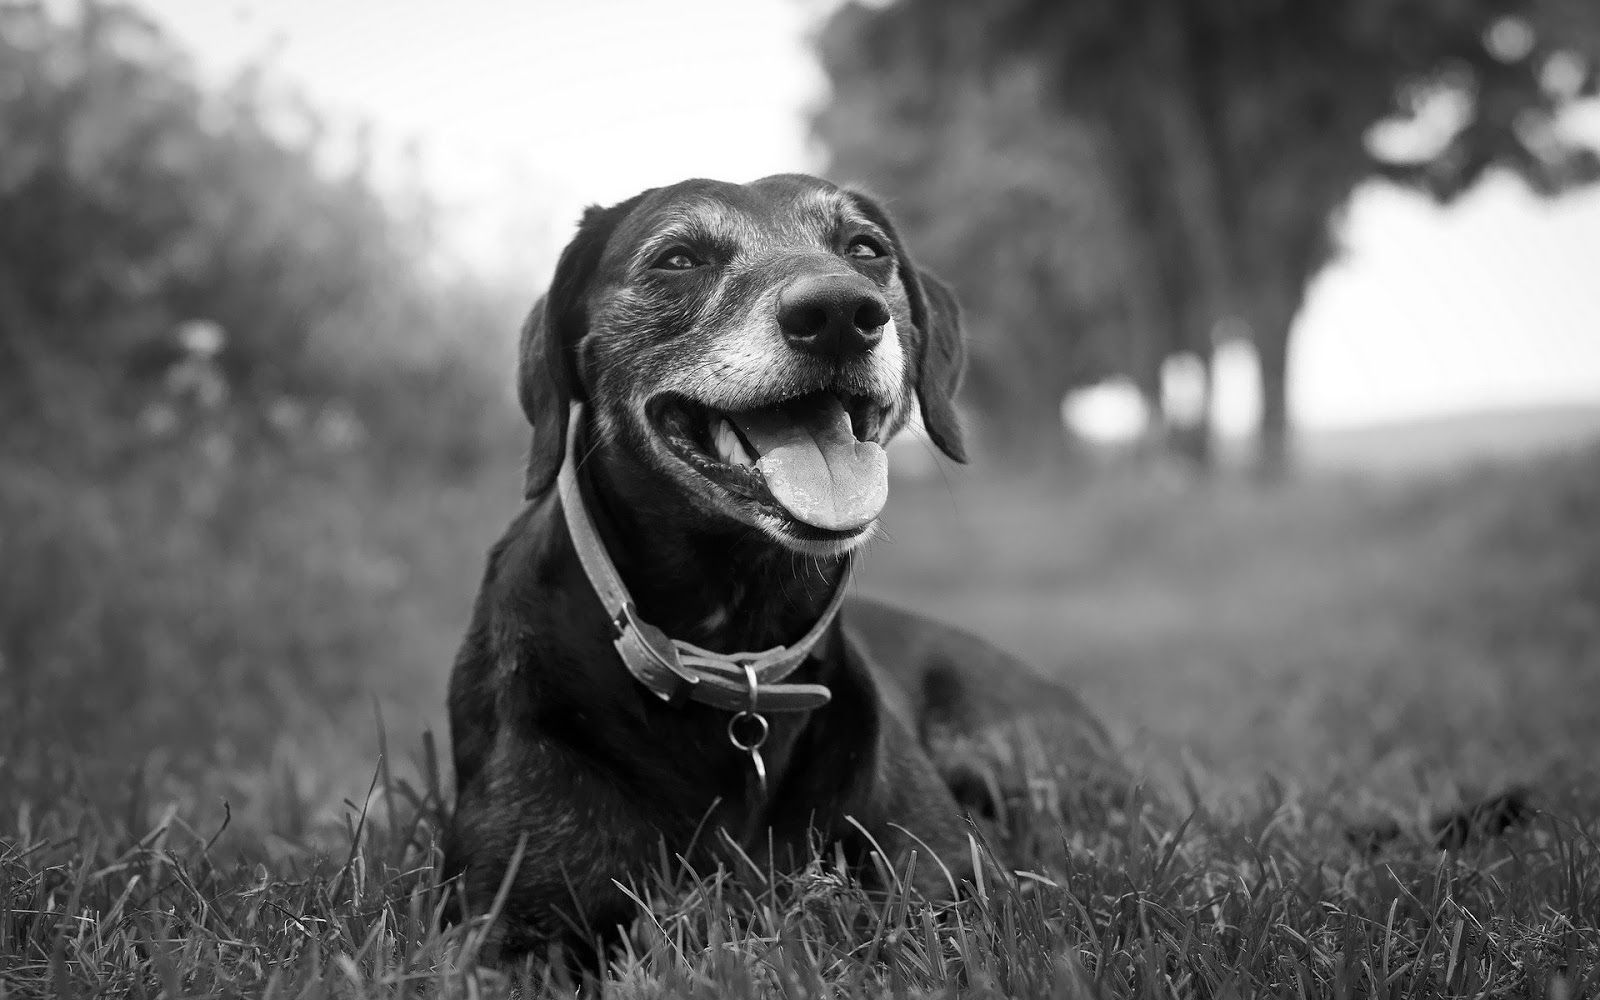 Dogs Wallpaper image detail for - black and white wallpaper with a dog | hd